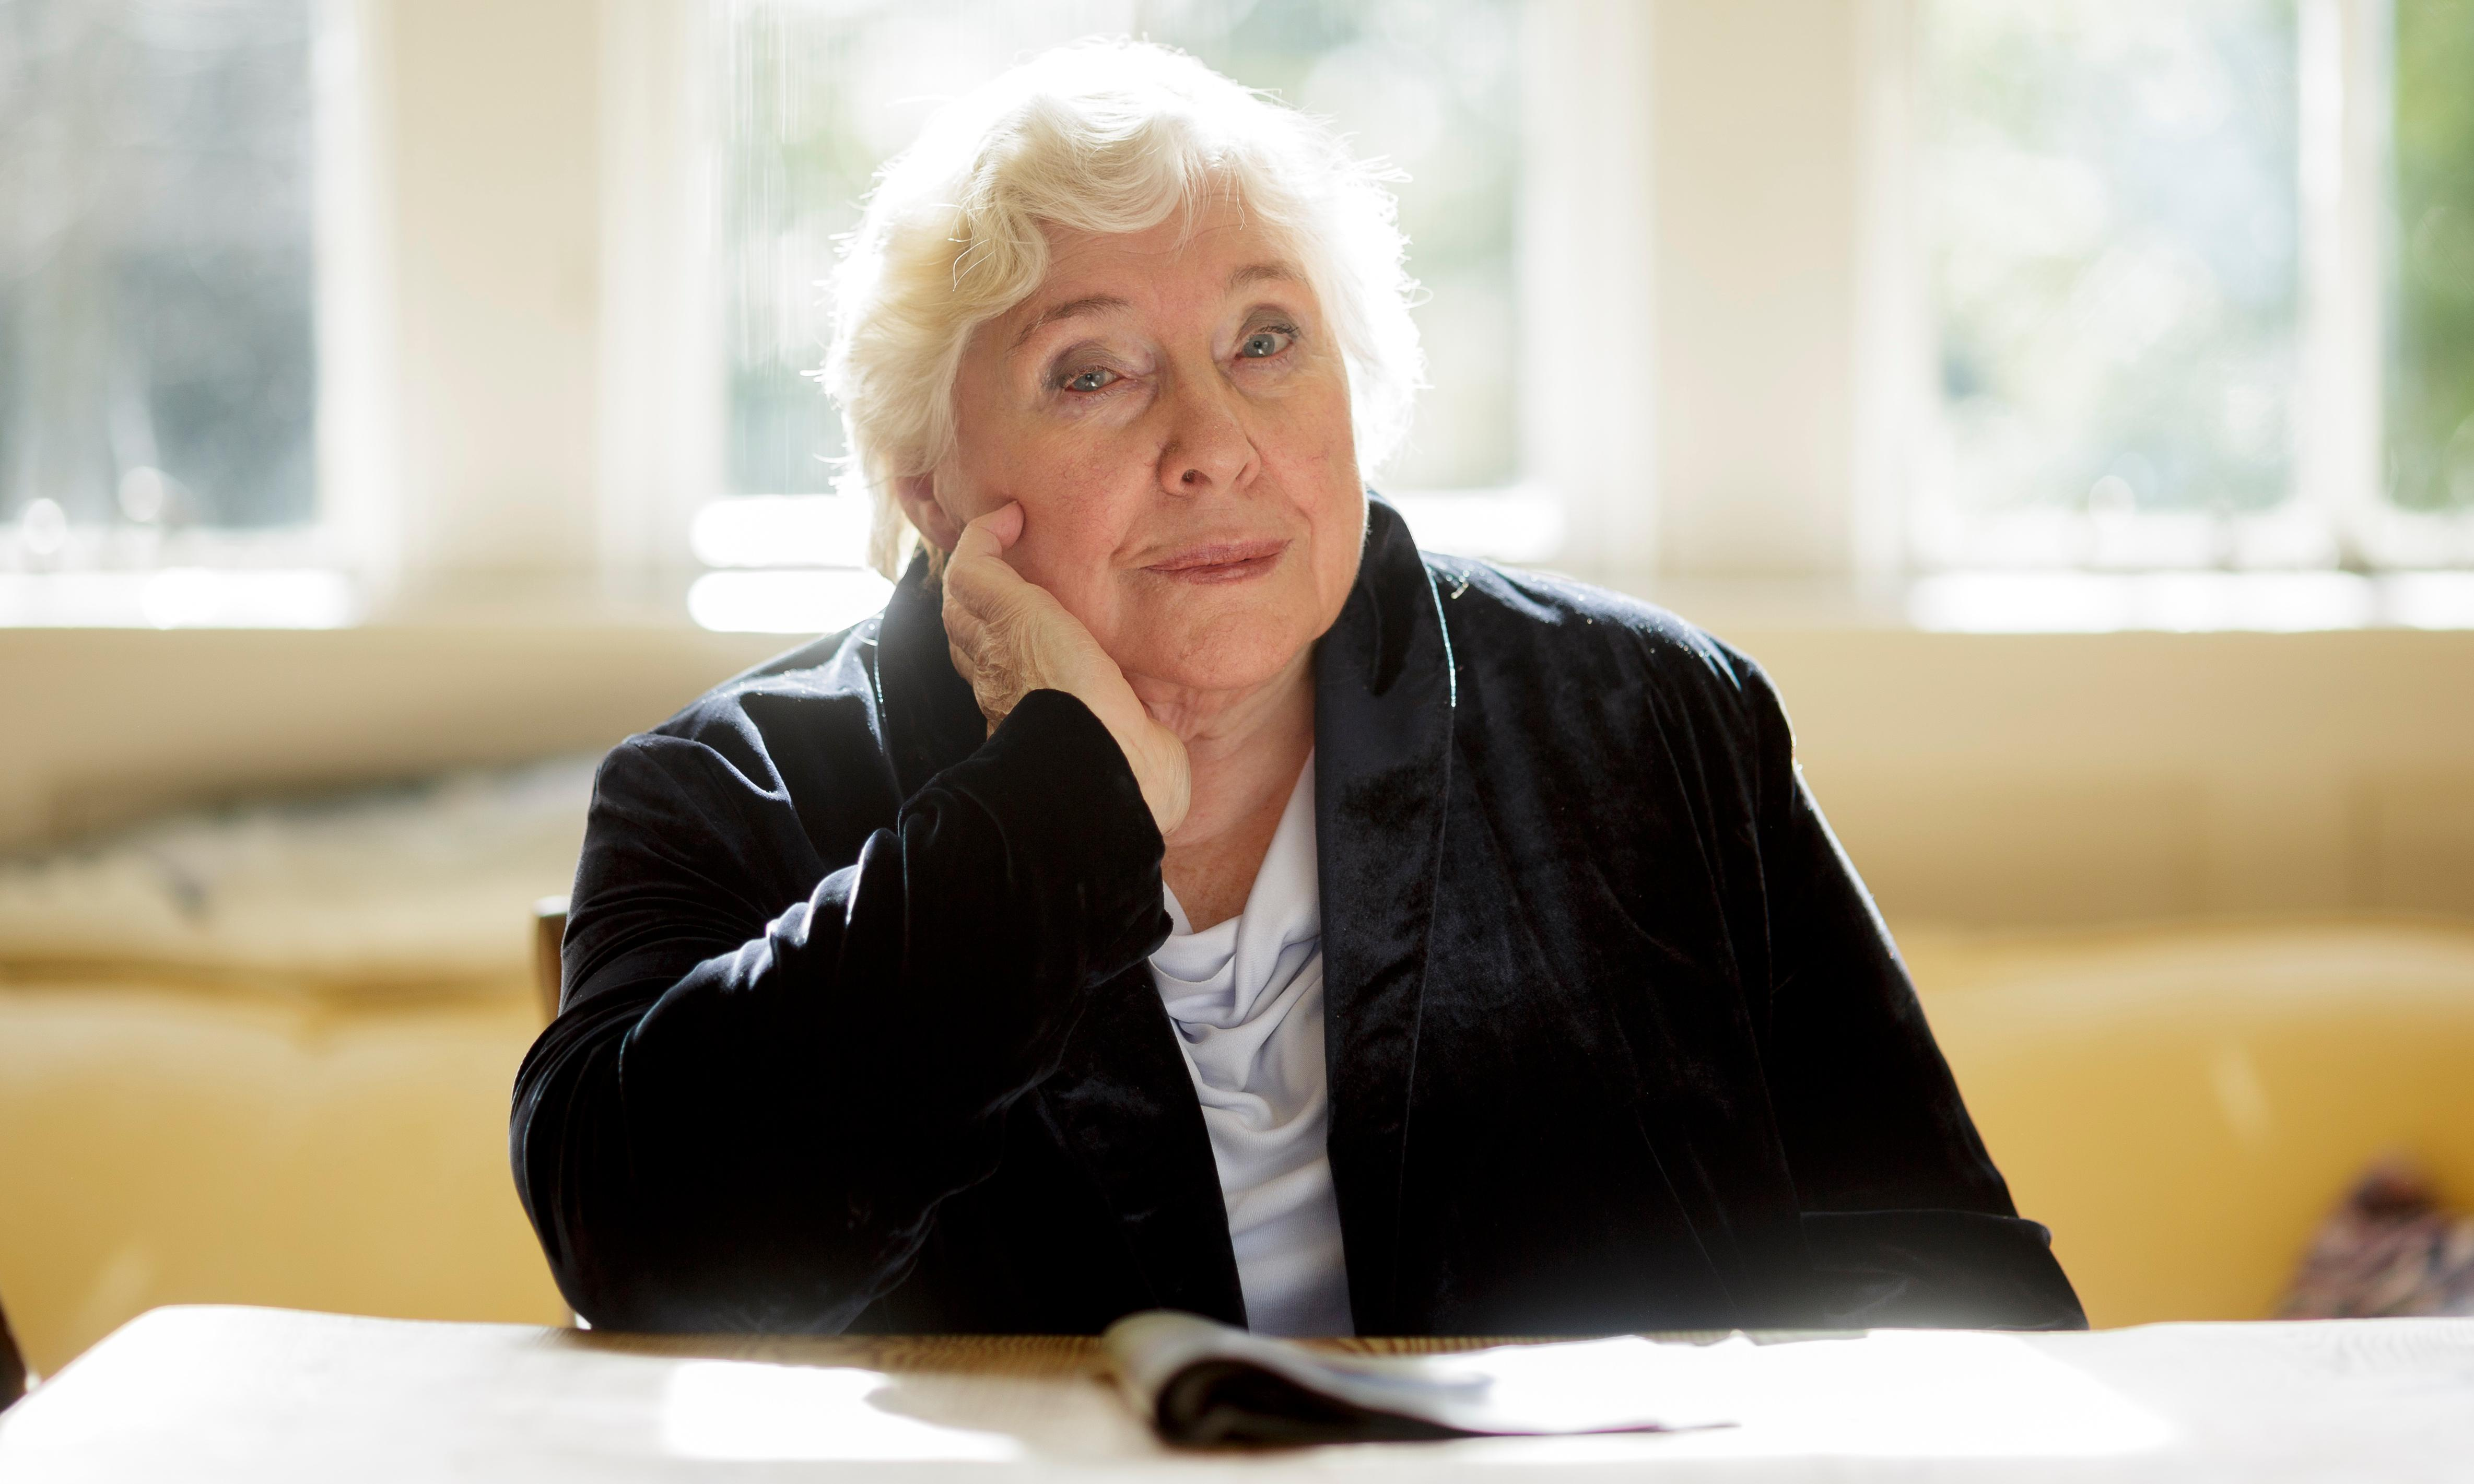 Blame parents for 'snowflake' millennials, says author Fay Weldon